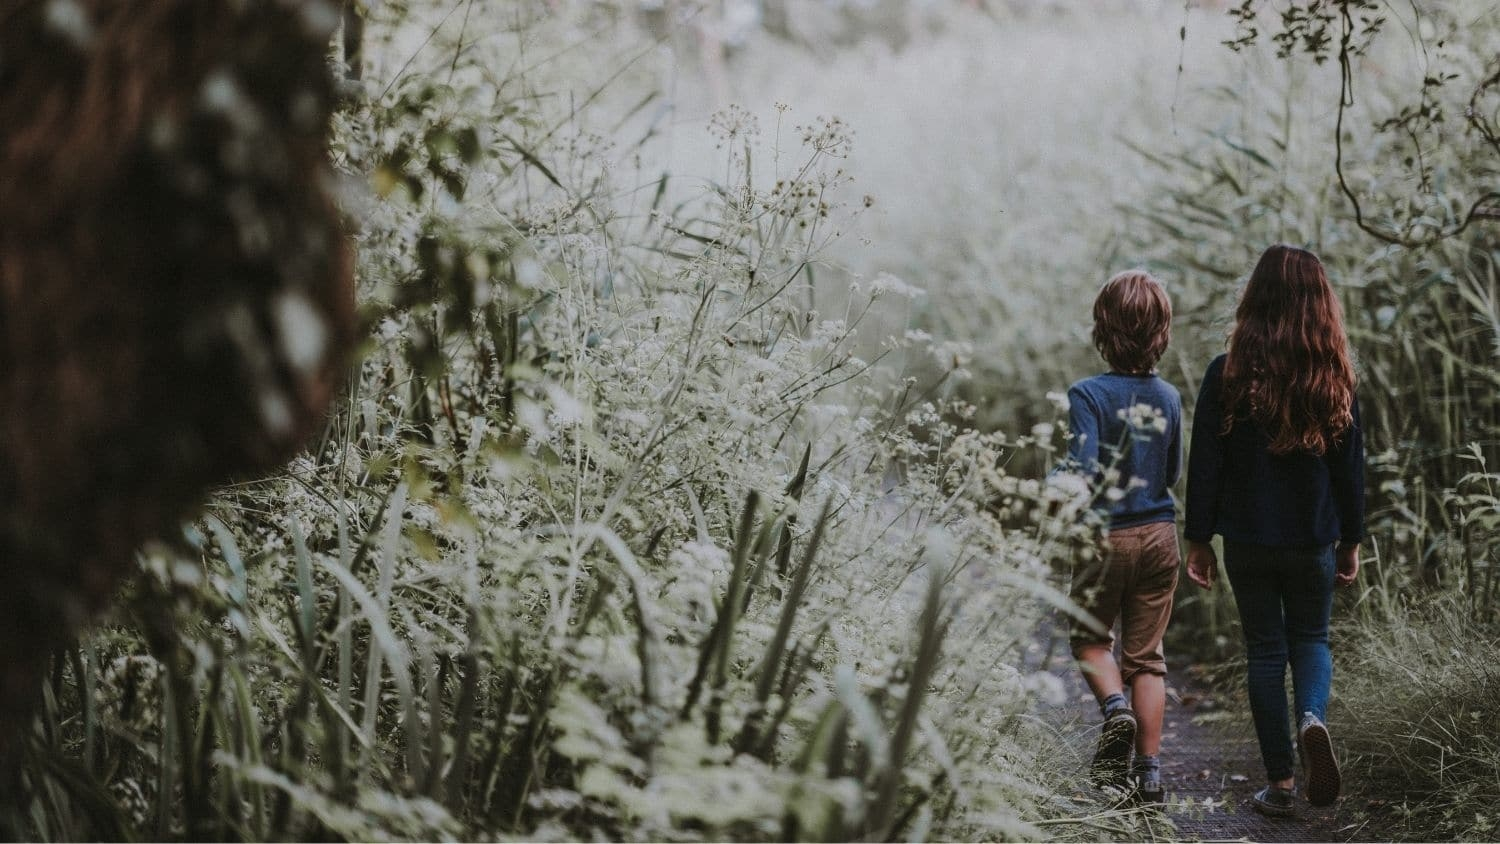 Children in nature - Study Finds Natural Outdoor Spaces Are Less Common at Schools - Forestry and Environmental Resources NC State University